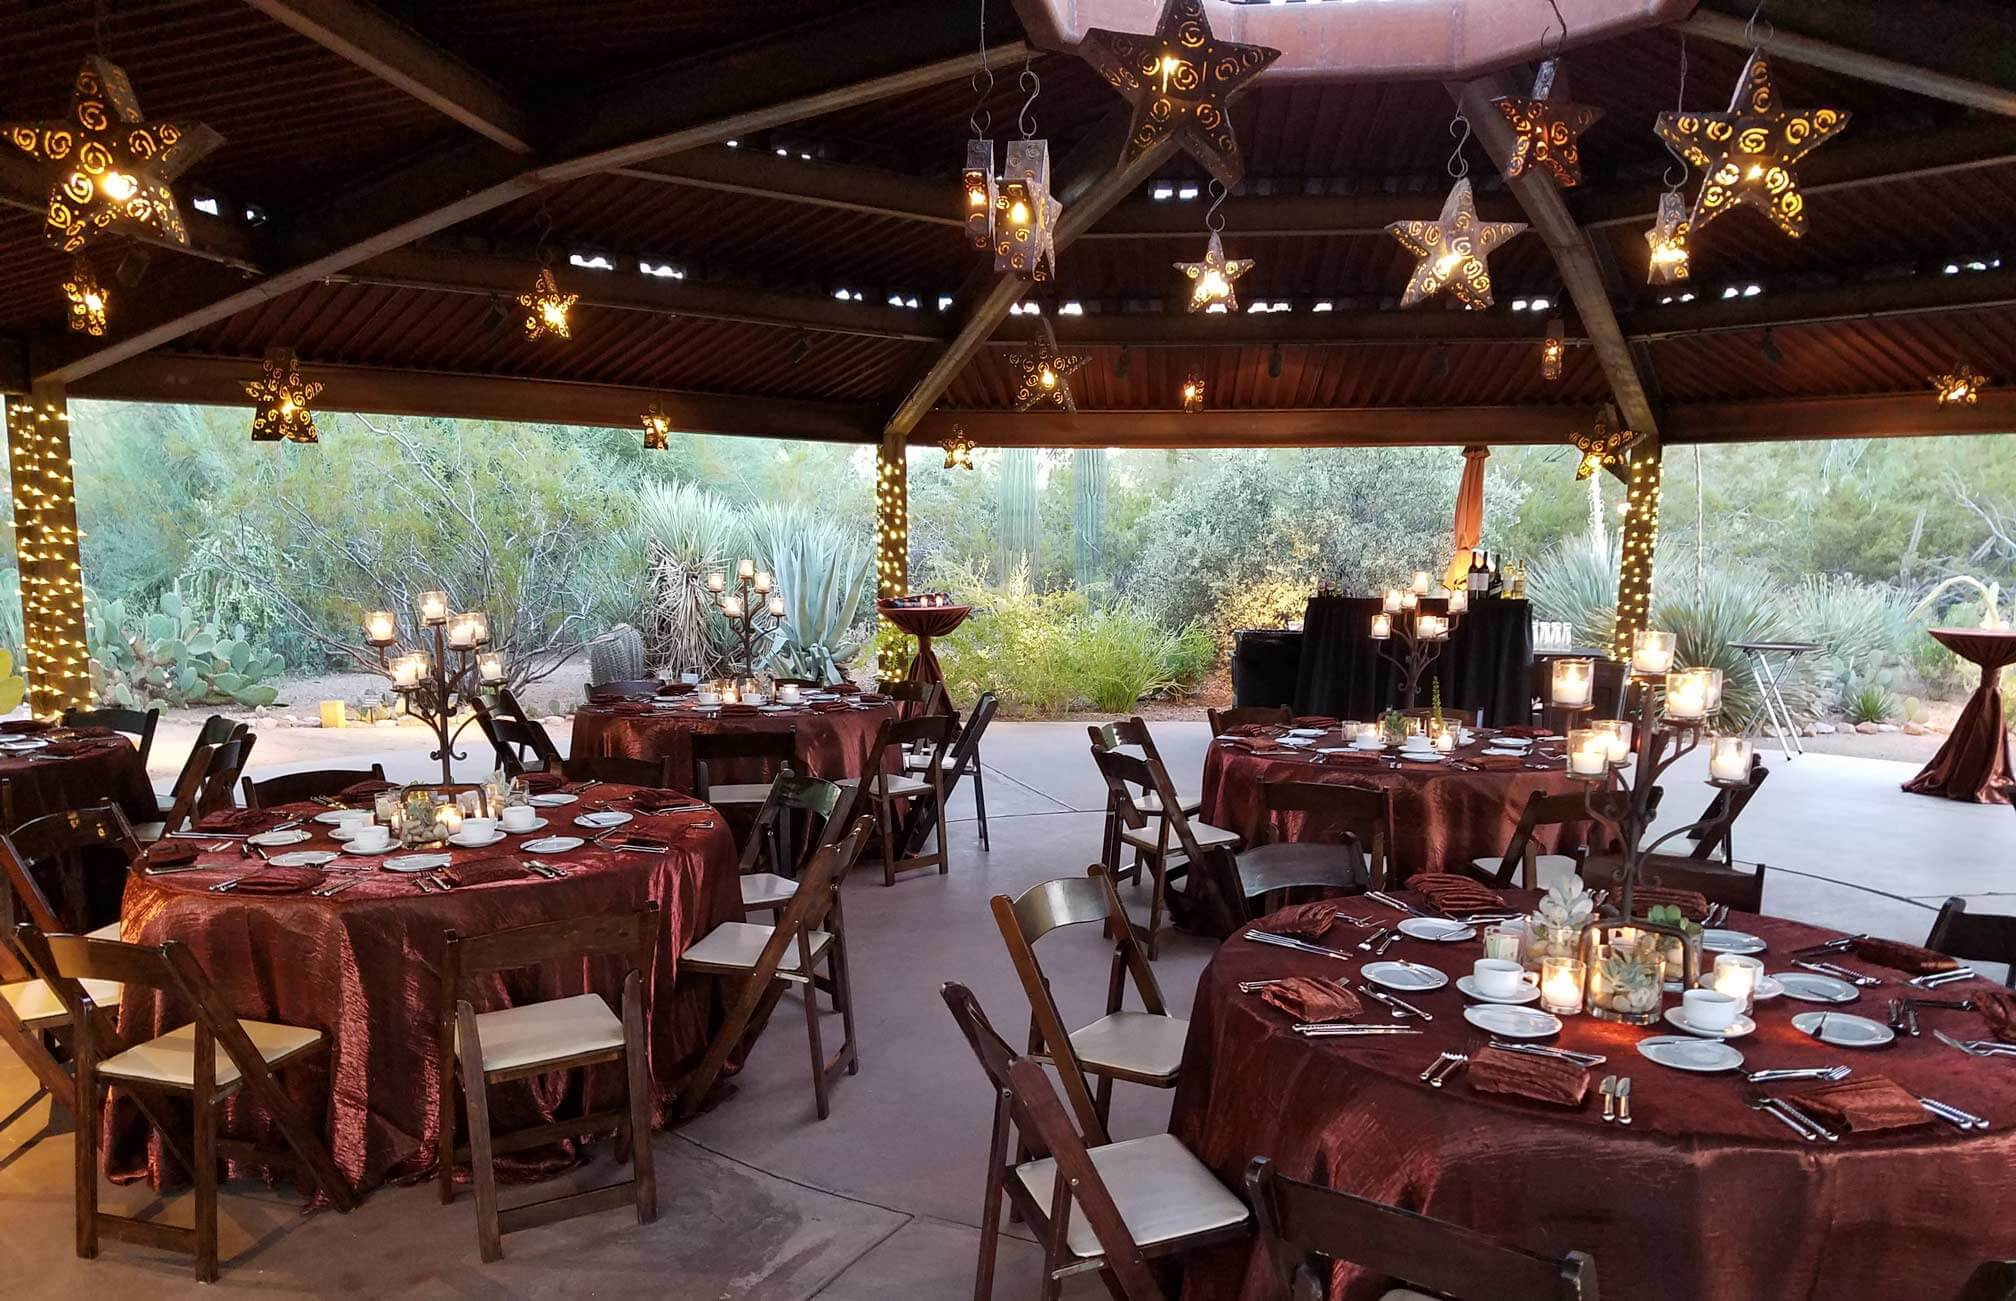 Western Private Dinner Events in Scottsdale